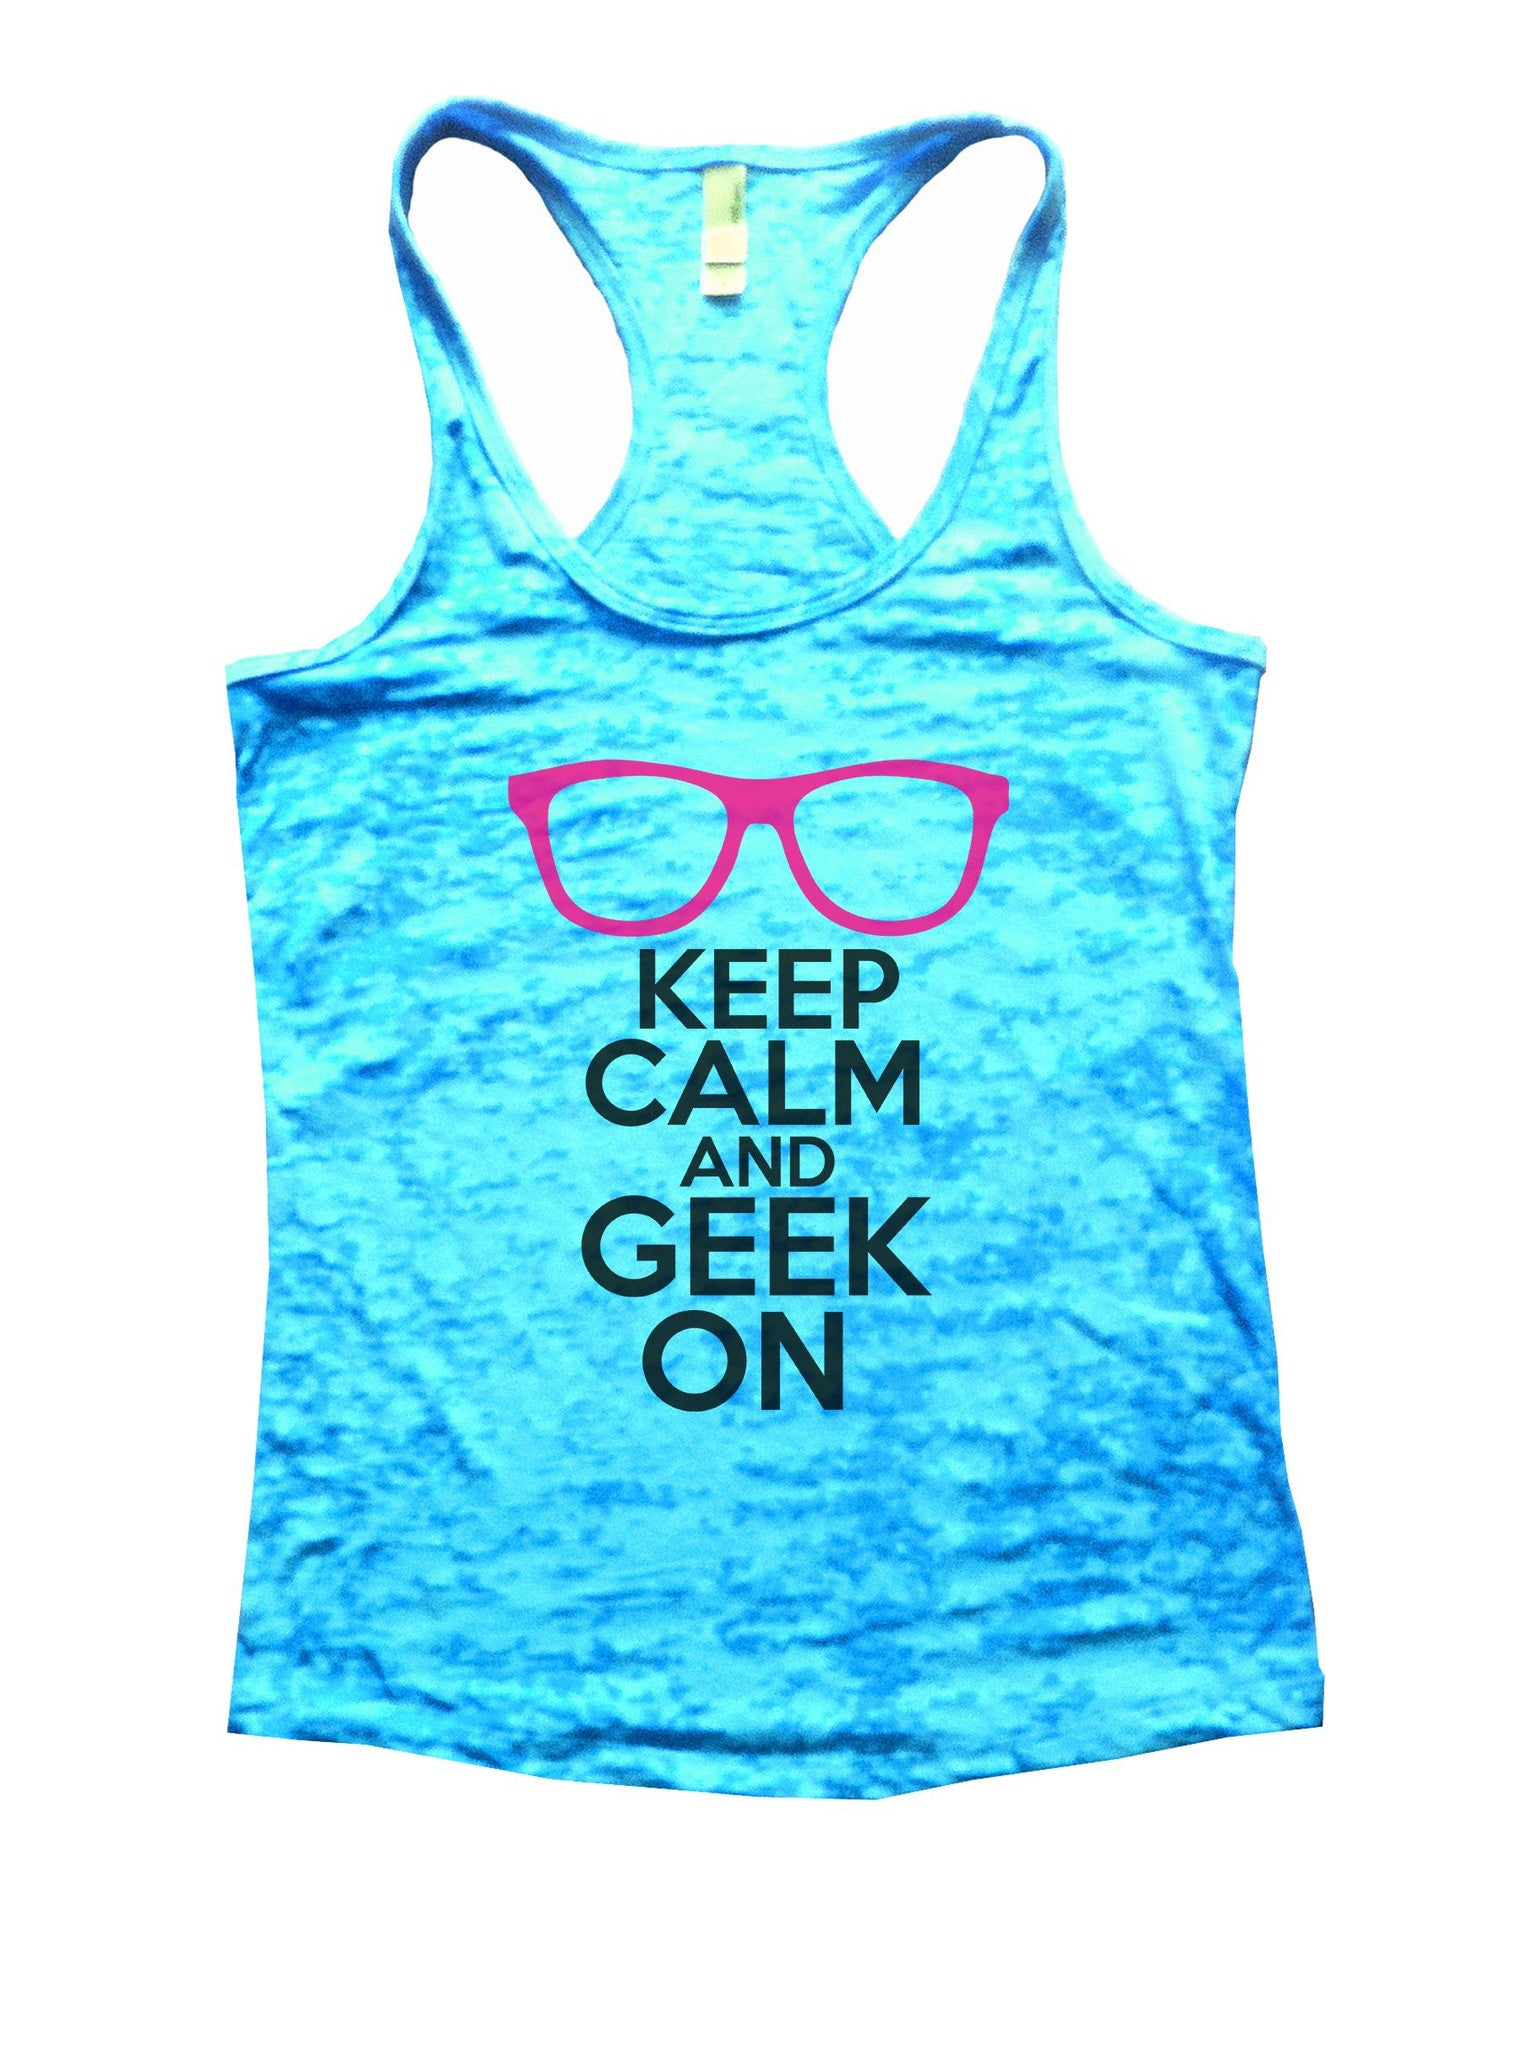 Keep Calm And Geek On Burnout Tank Top By BurnoutTankTops.com - 1121 - Funny Shirts Tank Tops Burnouts and Triblends  - 5